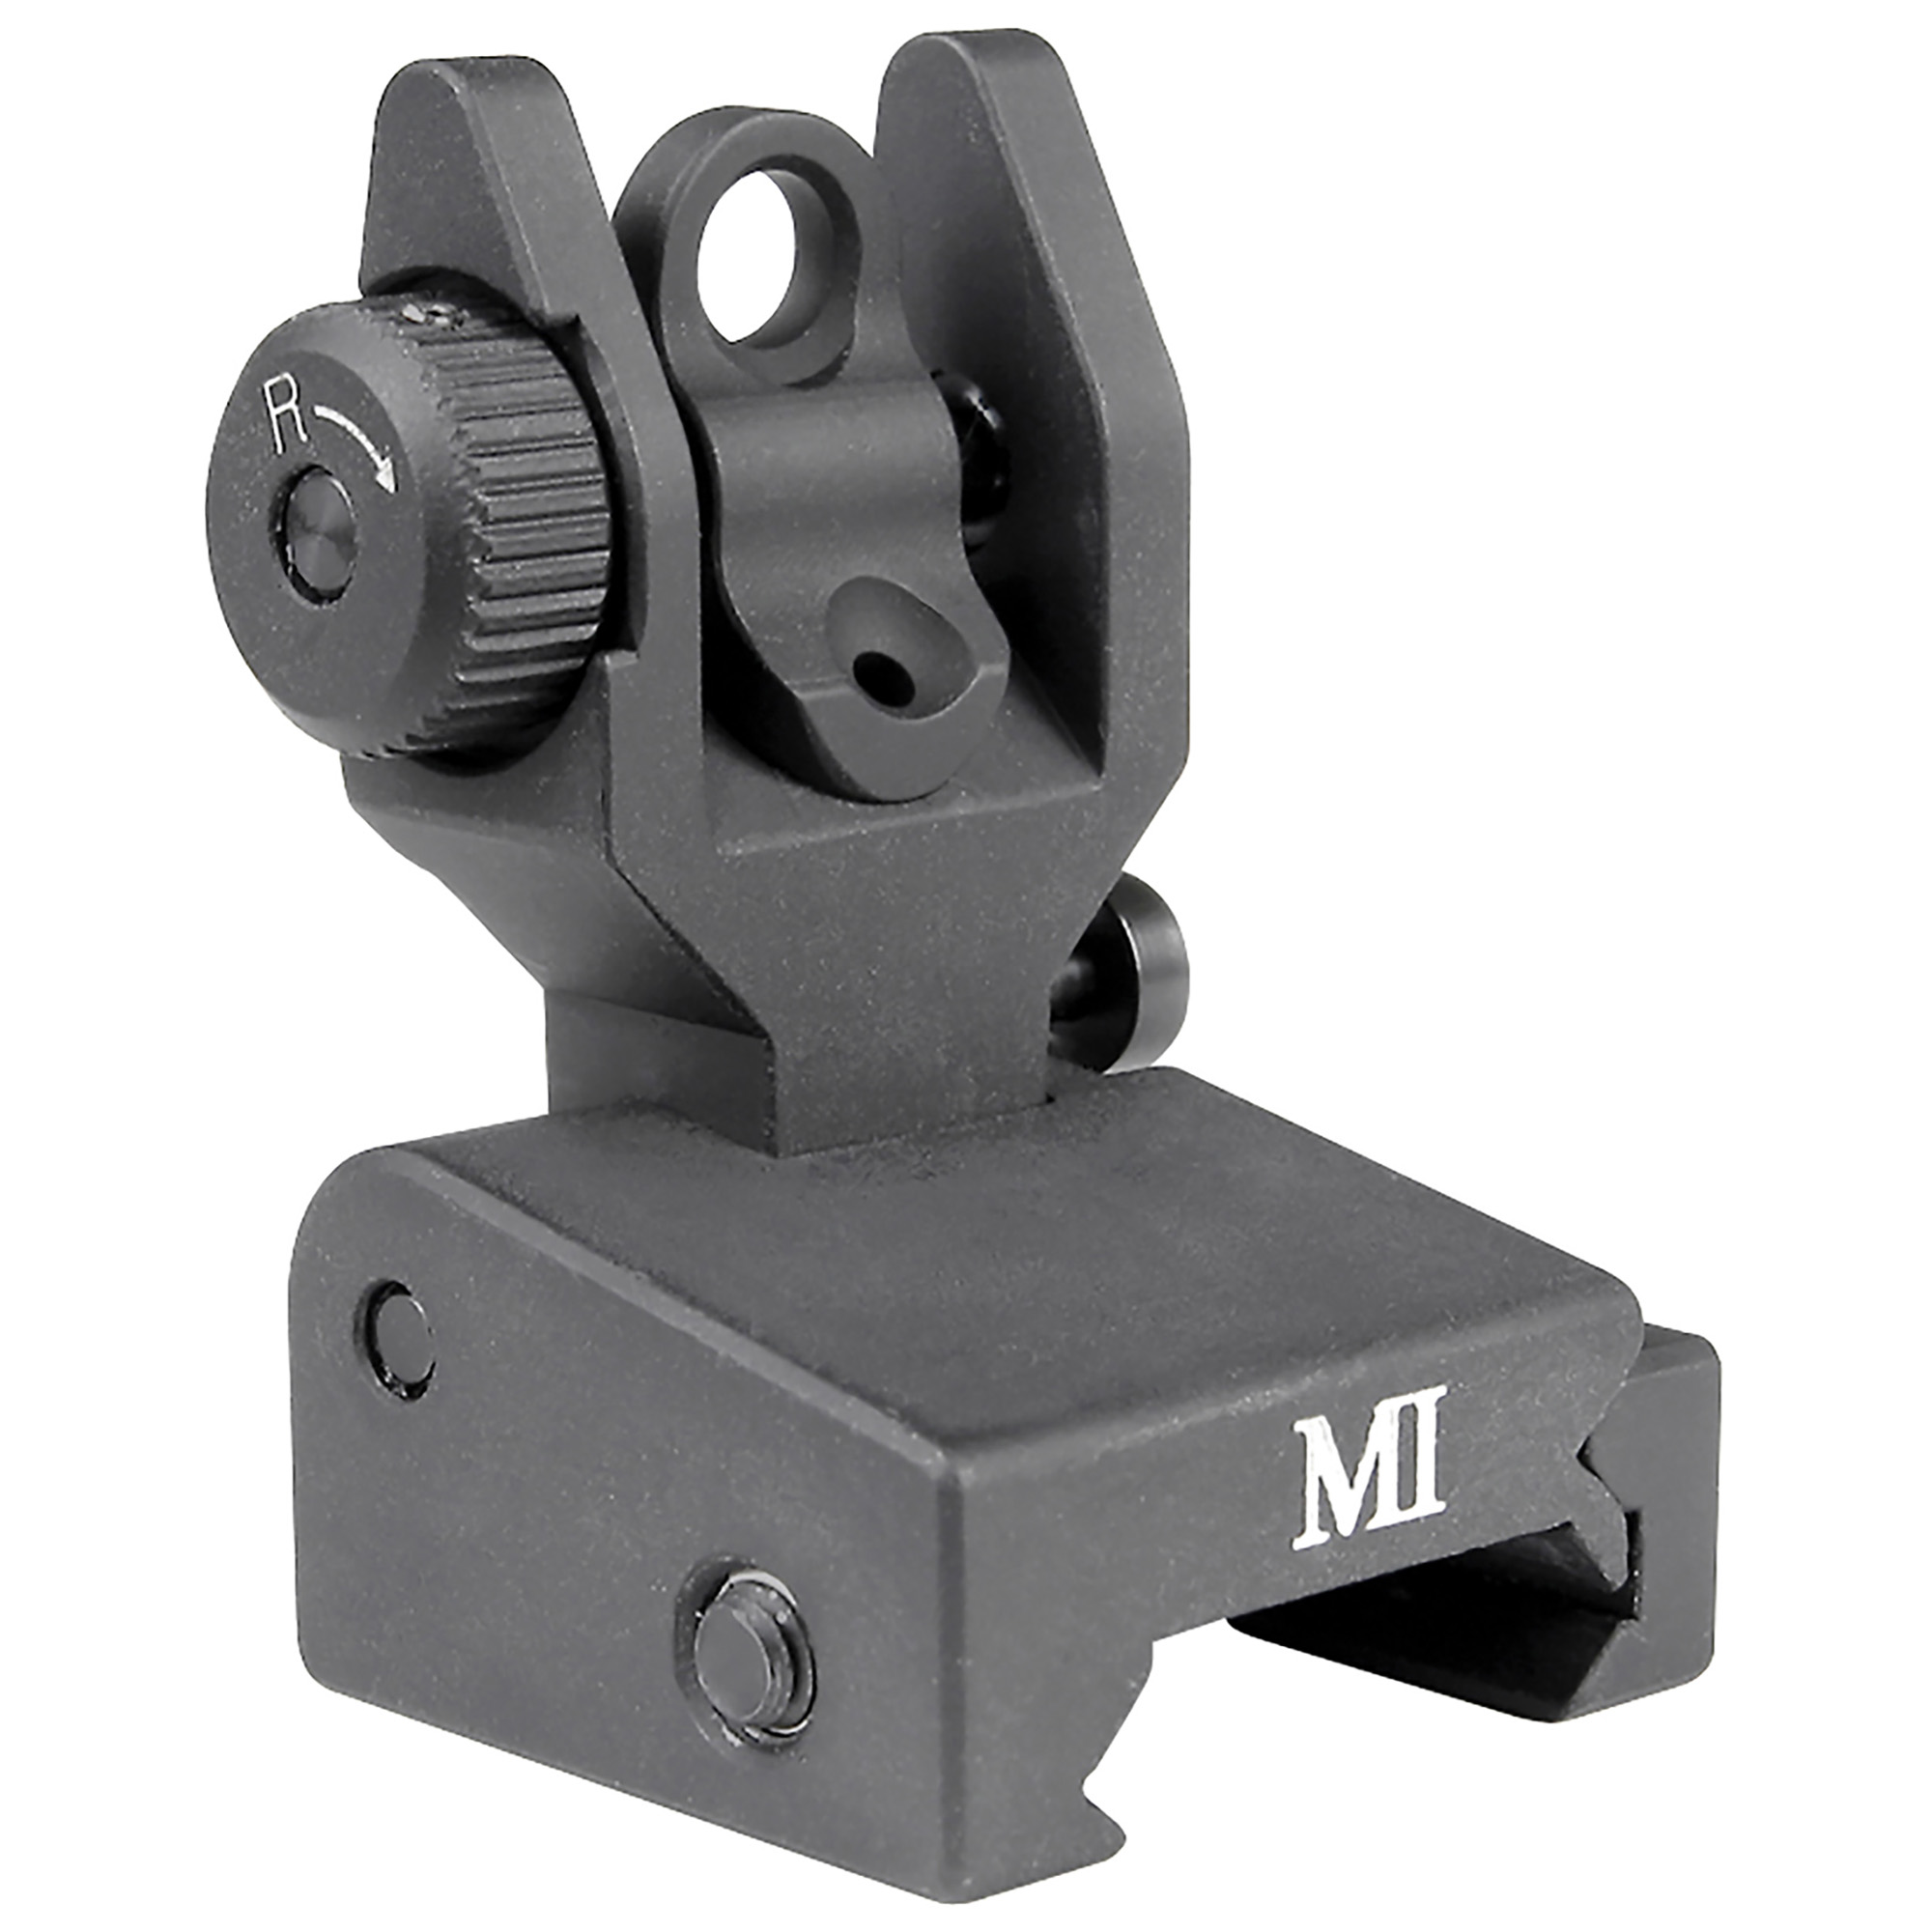 "The Same Plane Low Profile Rear Sight is constructed of high quality 6061 aluminum"" hardcoat anodized for a lifetime of service. The rear sight folds from the rear and locks in the raised position using a ball bearing pivot detent. A micro style windage knob features the same .49 MOA as on M16 rifles (.65 MOA on M4 rifles)."